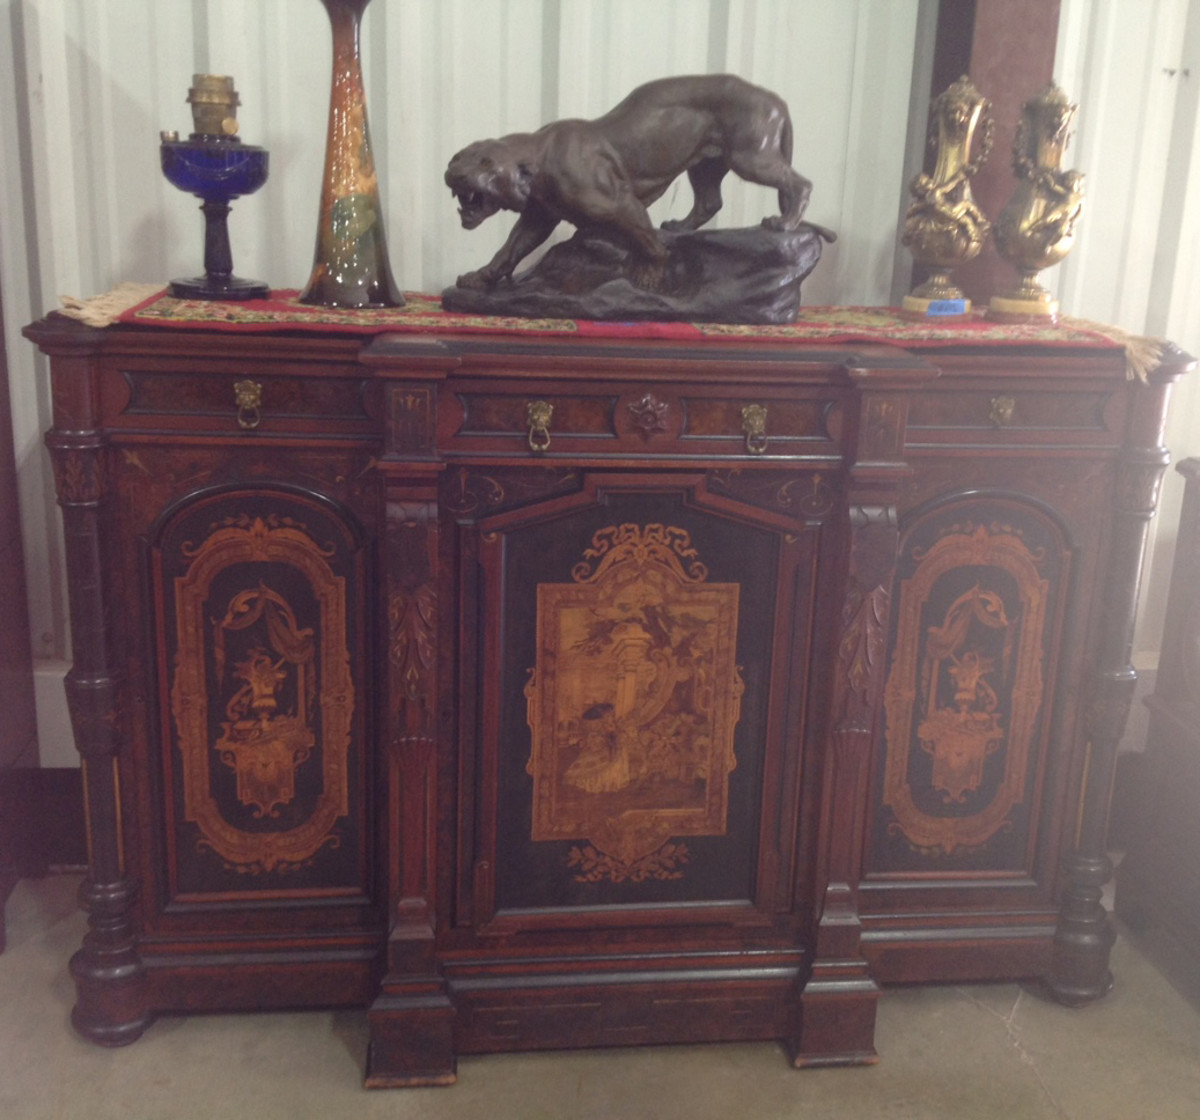 The show has a large variety of furniture, lamps, paintings, knick-knacks and other home furnishings.